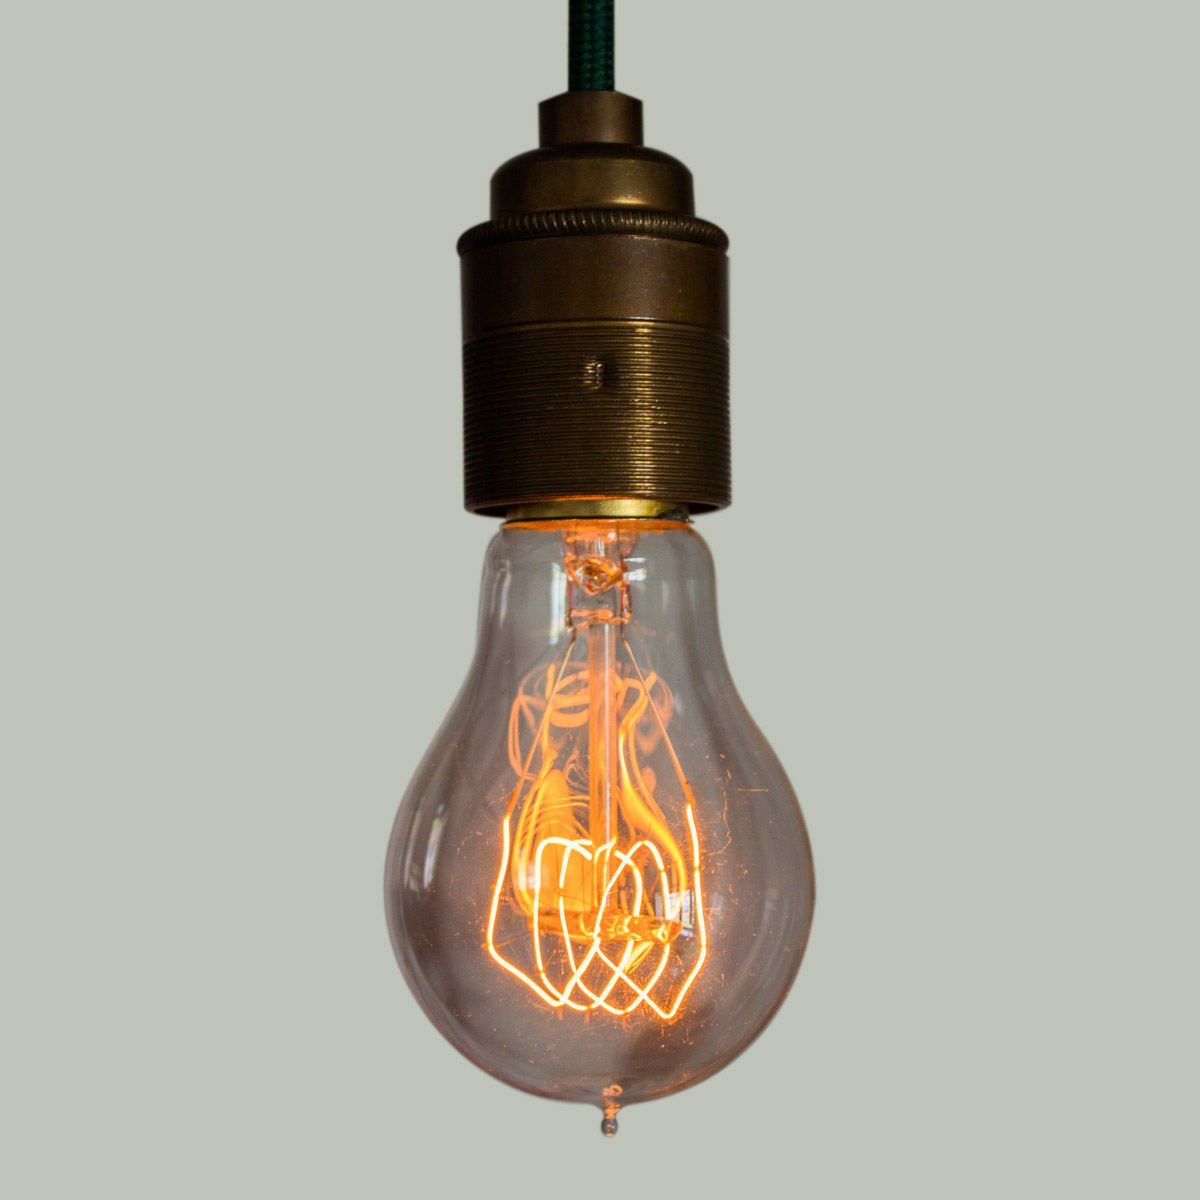 Edison Light Bulb - 40W A19 Quad Loop Filament bulb - Vintage - Shmeer Lighting 1